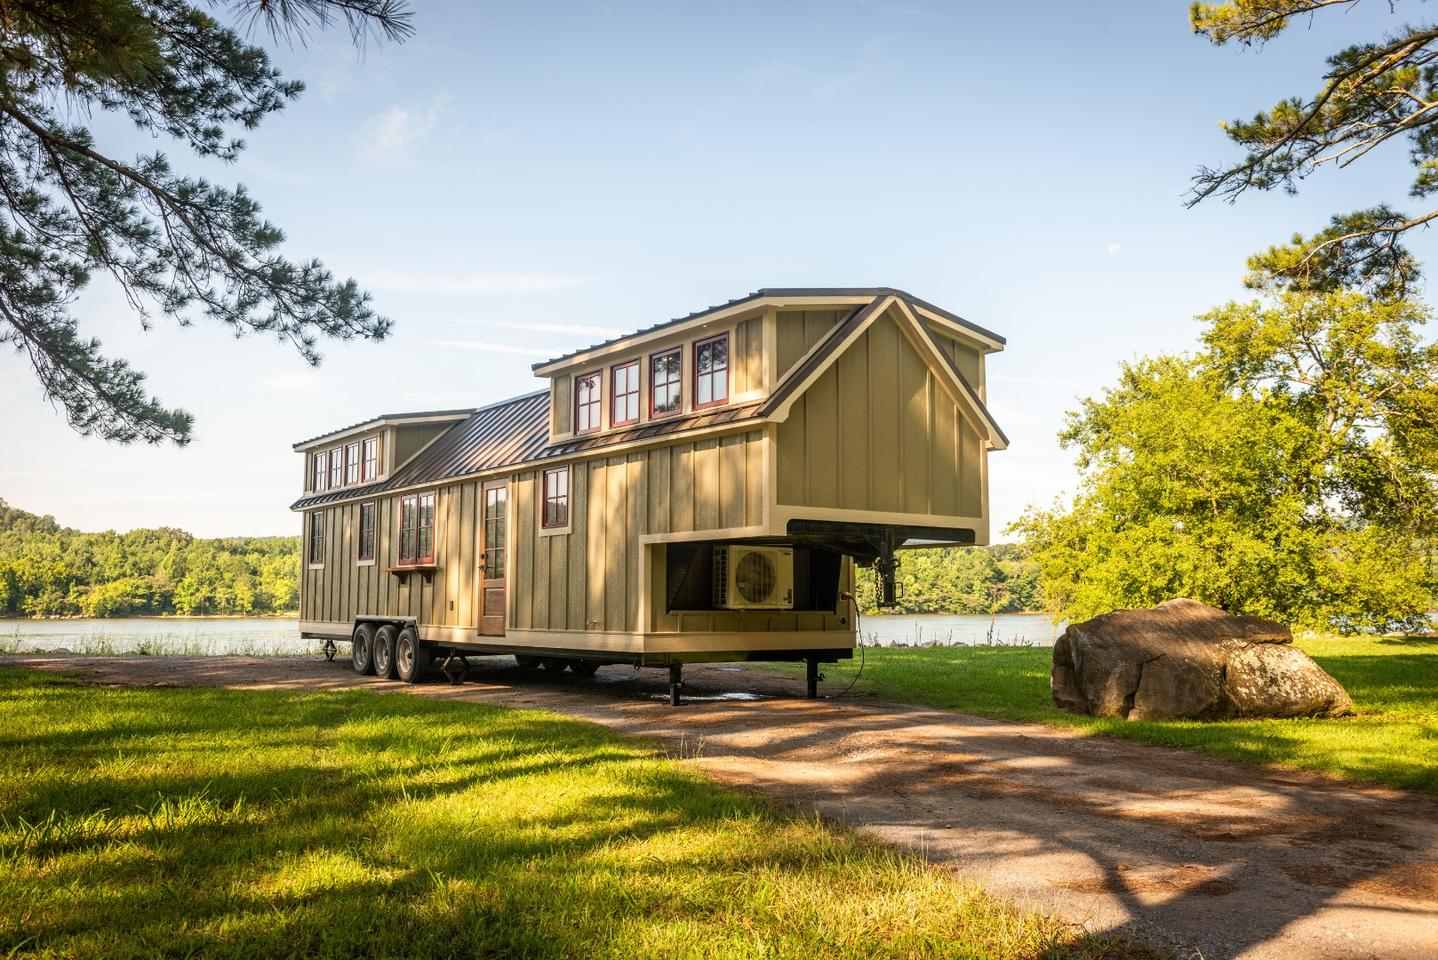 One of the best luxury tiny houses on the market, the Denali, has been made bigger and quite possibly better with the release of the Denali XL